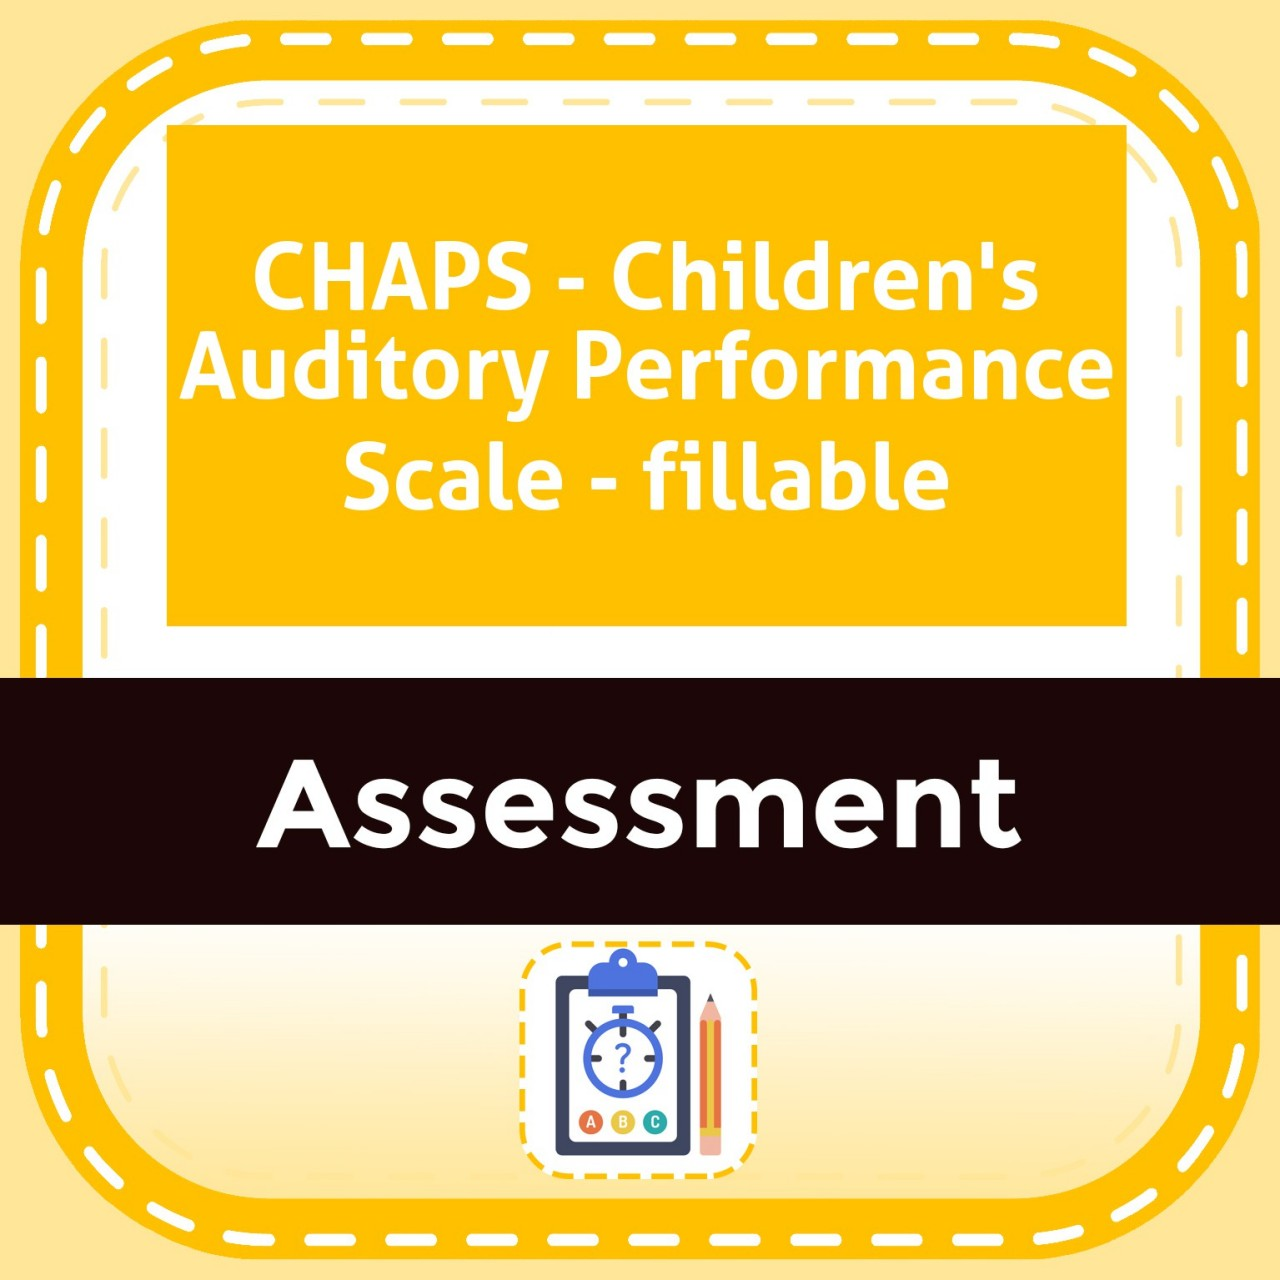 CHAPS - Children's Auditory Performance Scale - fillable